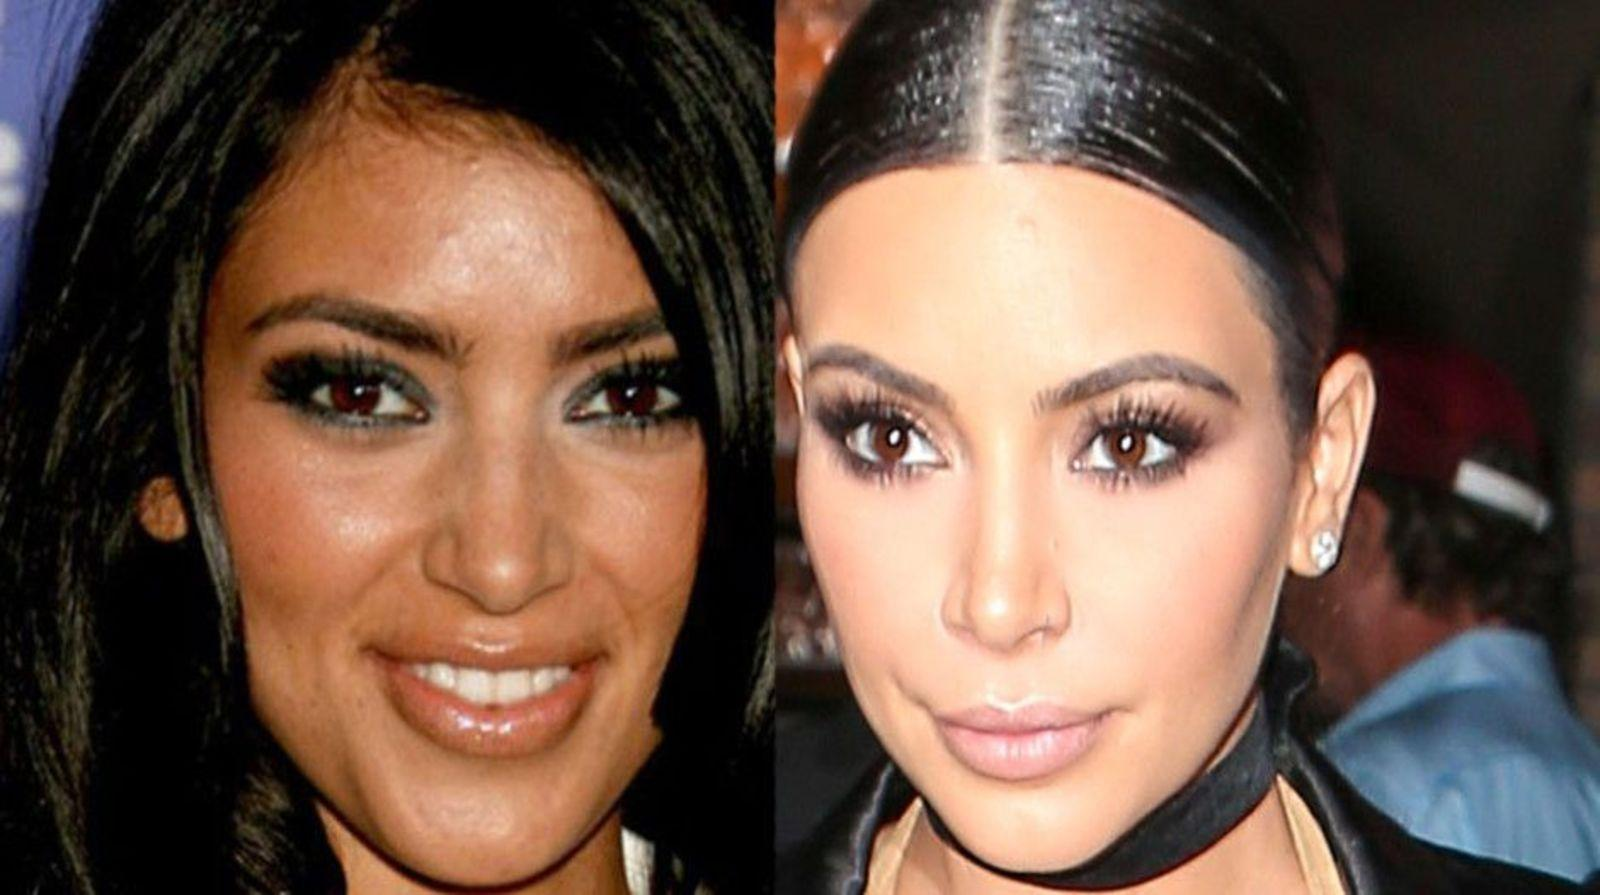 kardashians before and after photos